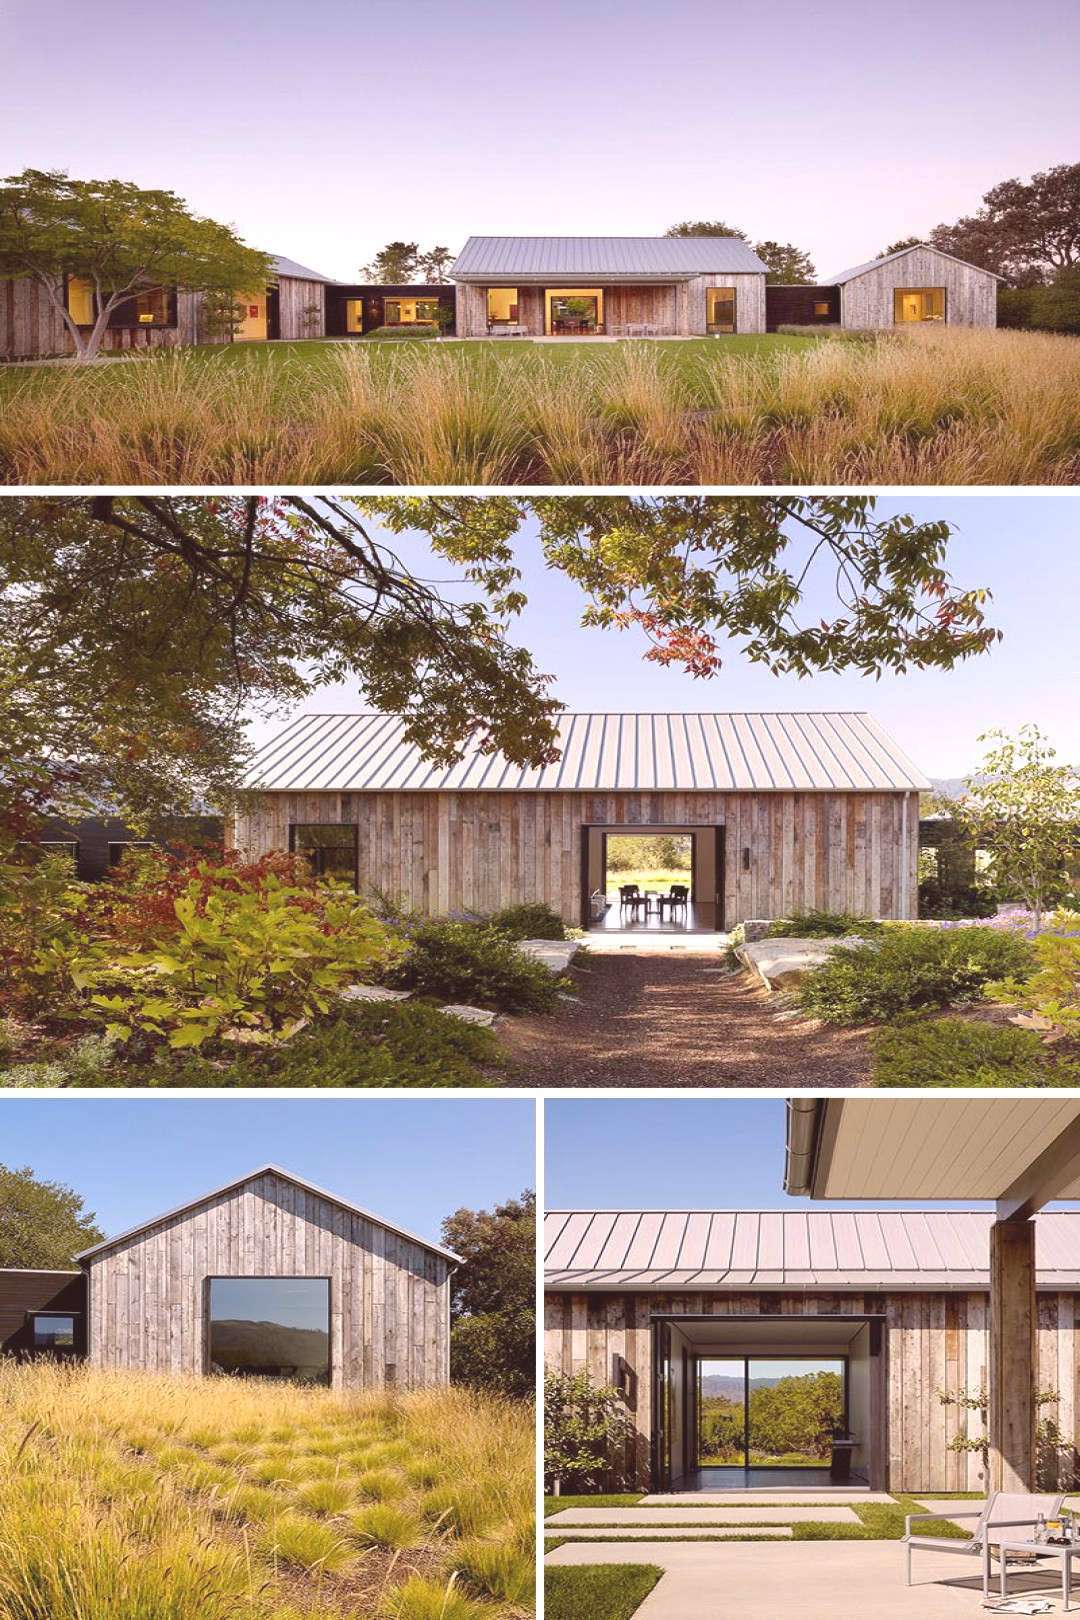 Walker Warner Architects have designed the Portola Valley Barn, a contemporary house in California,